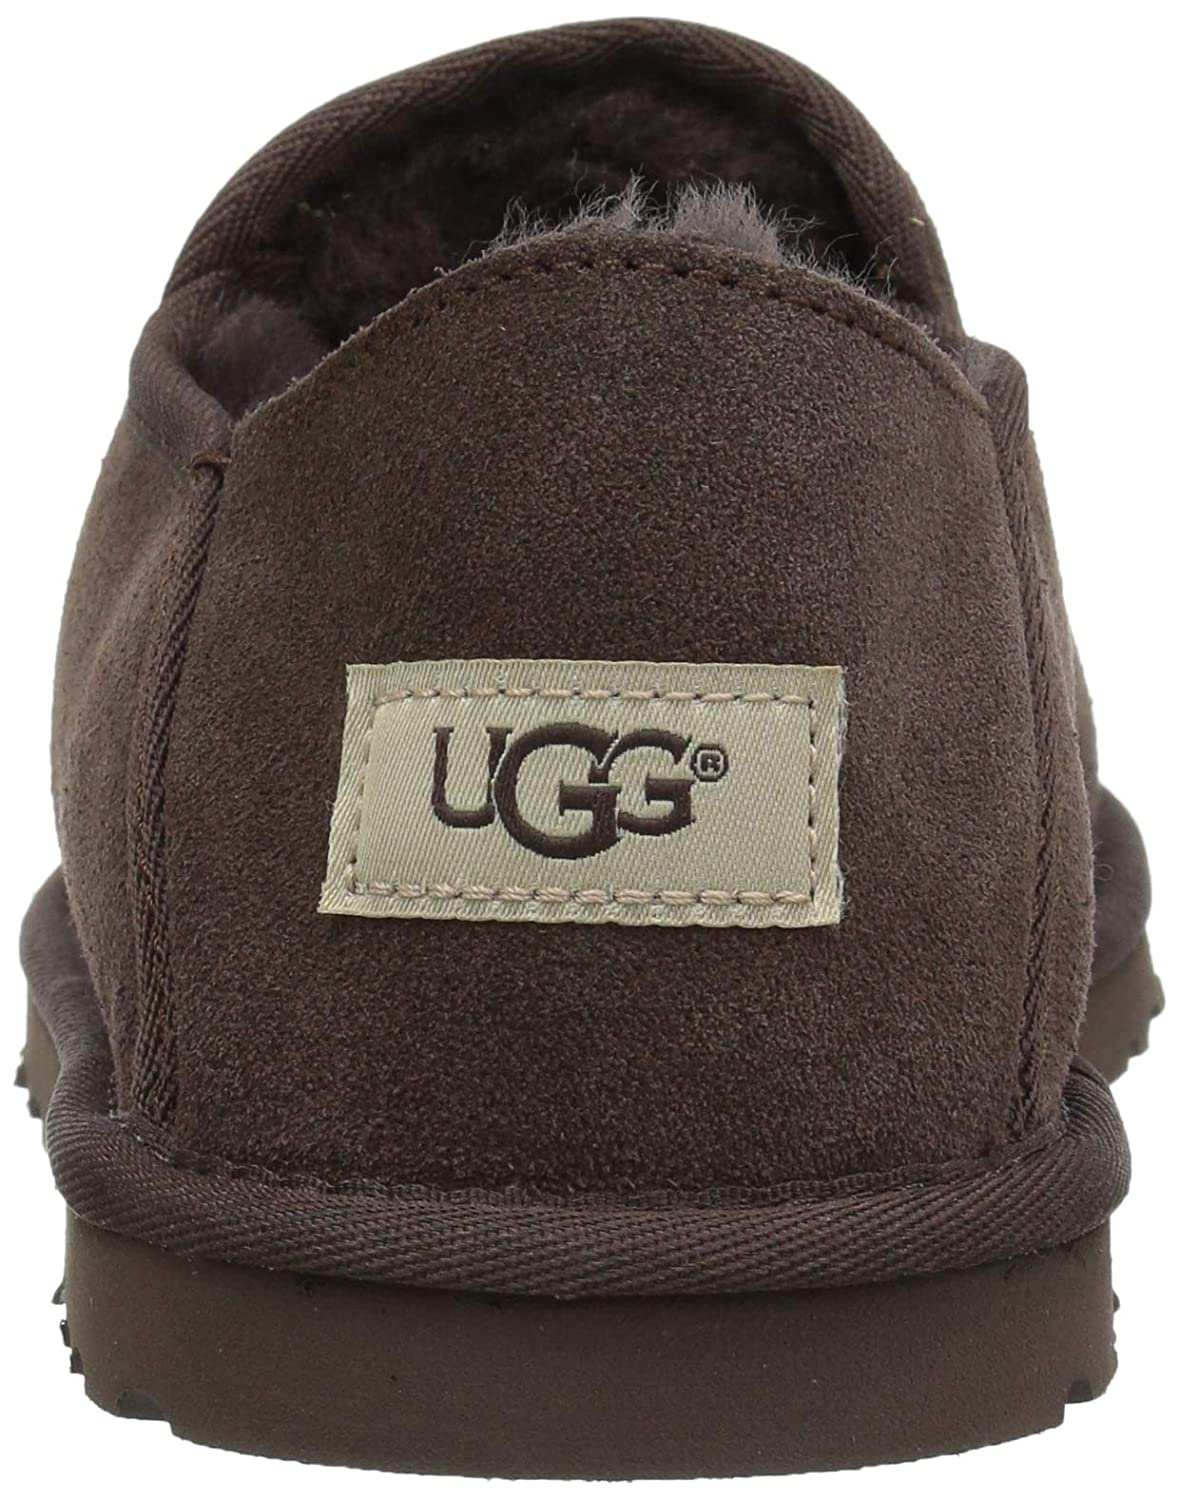 1529d7fcbff UGG Womens 3010 Kenton: Amazon.com.au: Fashion